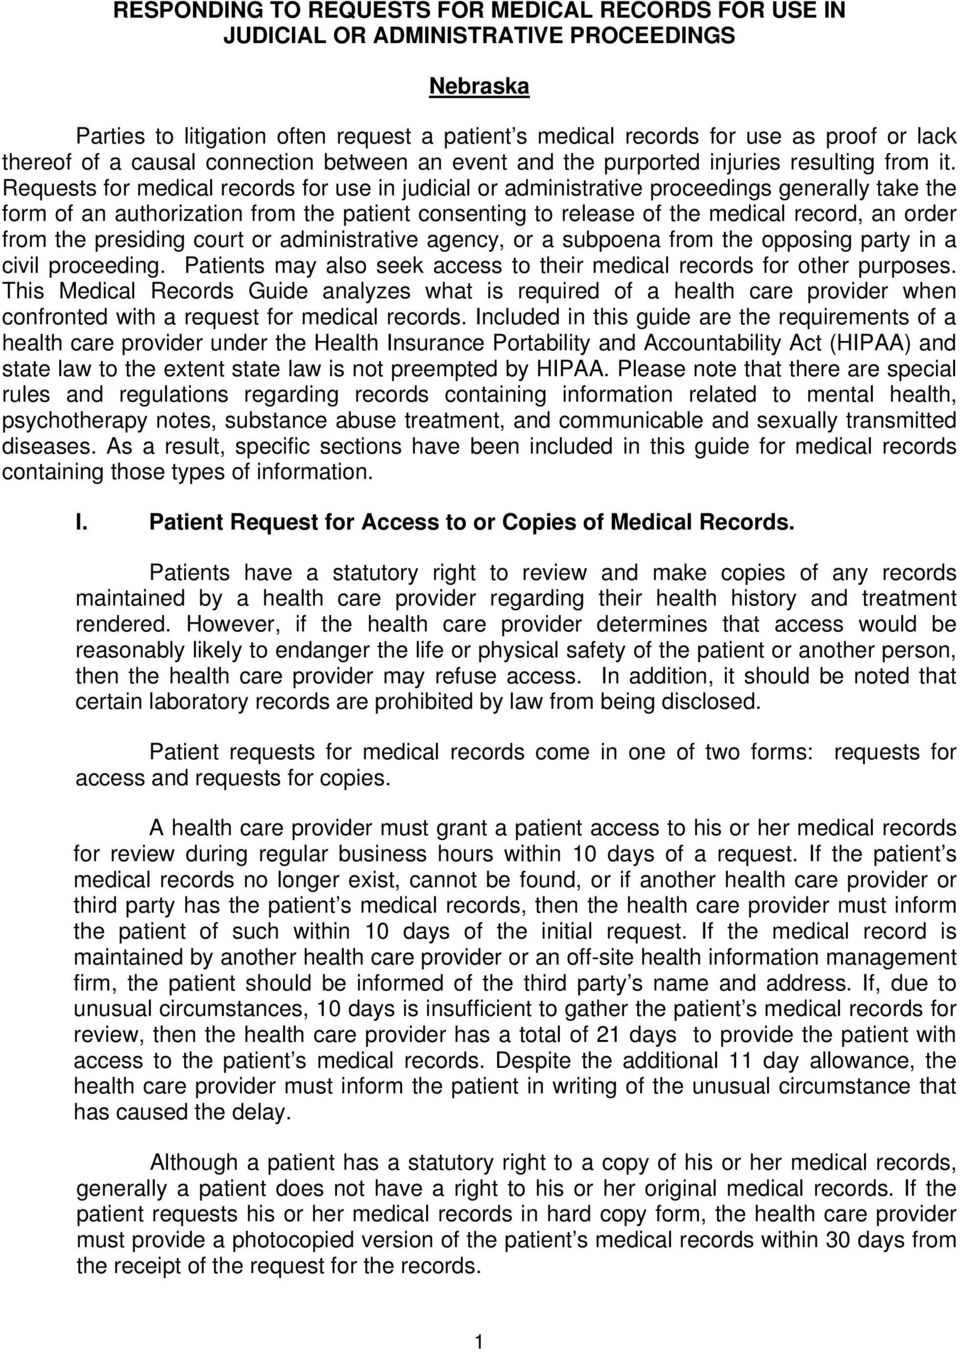 Requests for medical records for use in judicial or administrative proceedings generally take the form of an authorization from the patient consenting to release of the medical record, an order from